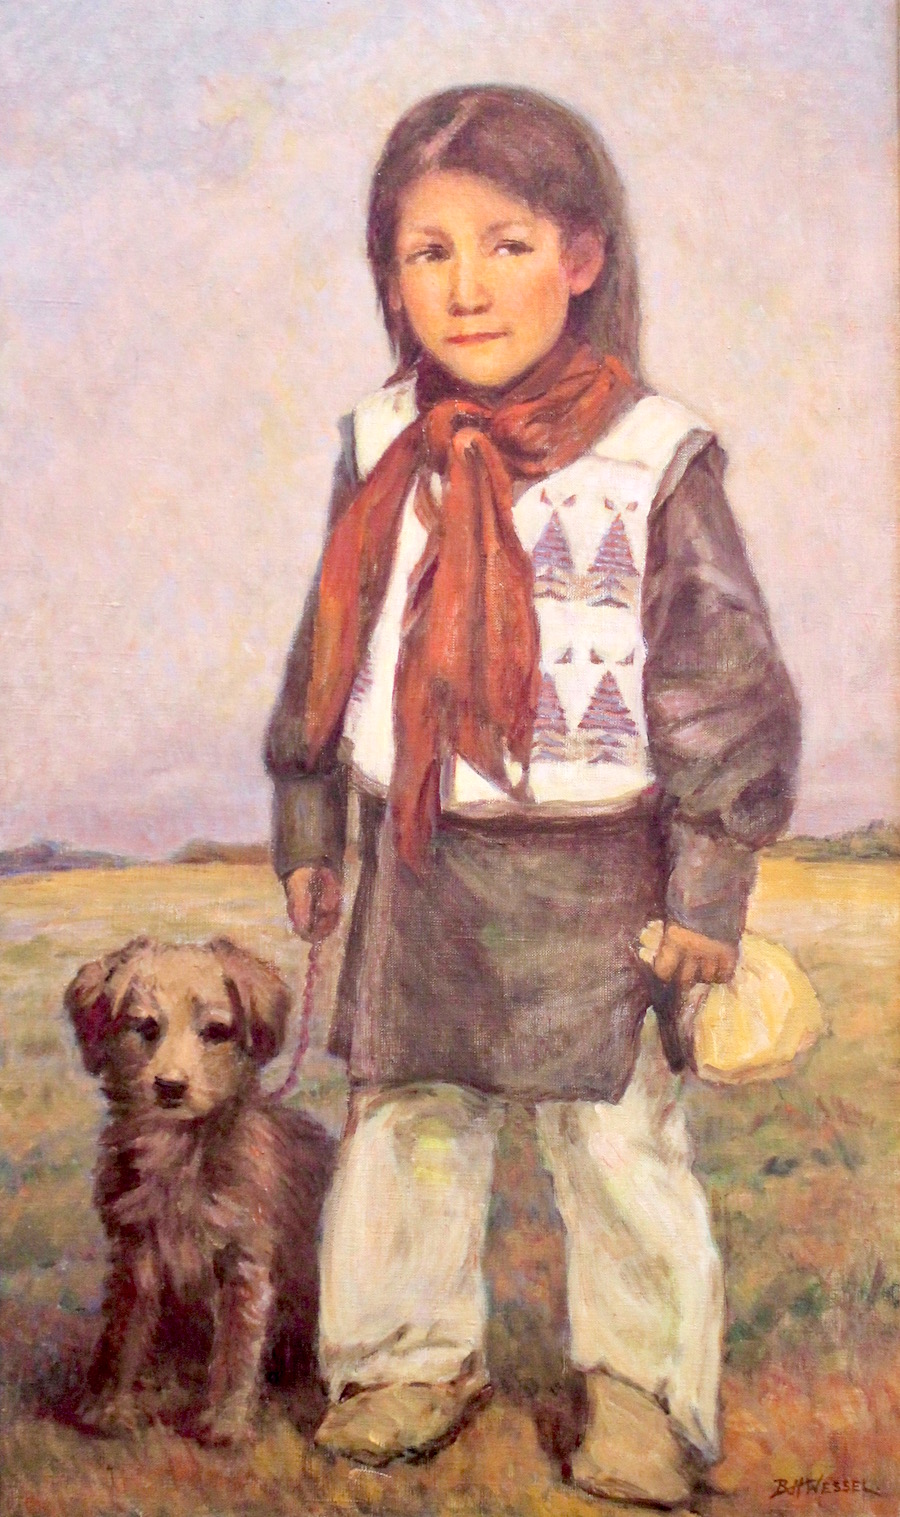 """Indian Boy with Puppy"", Oil on canvas, 30""x22"""